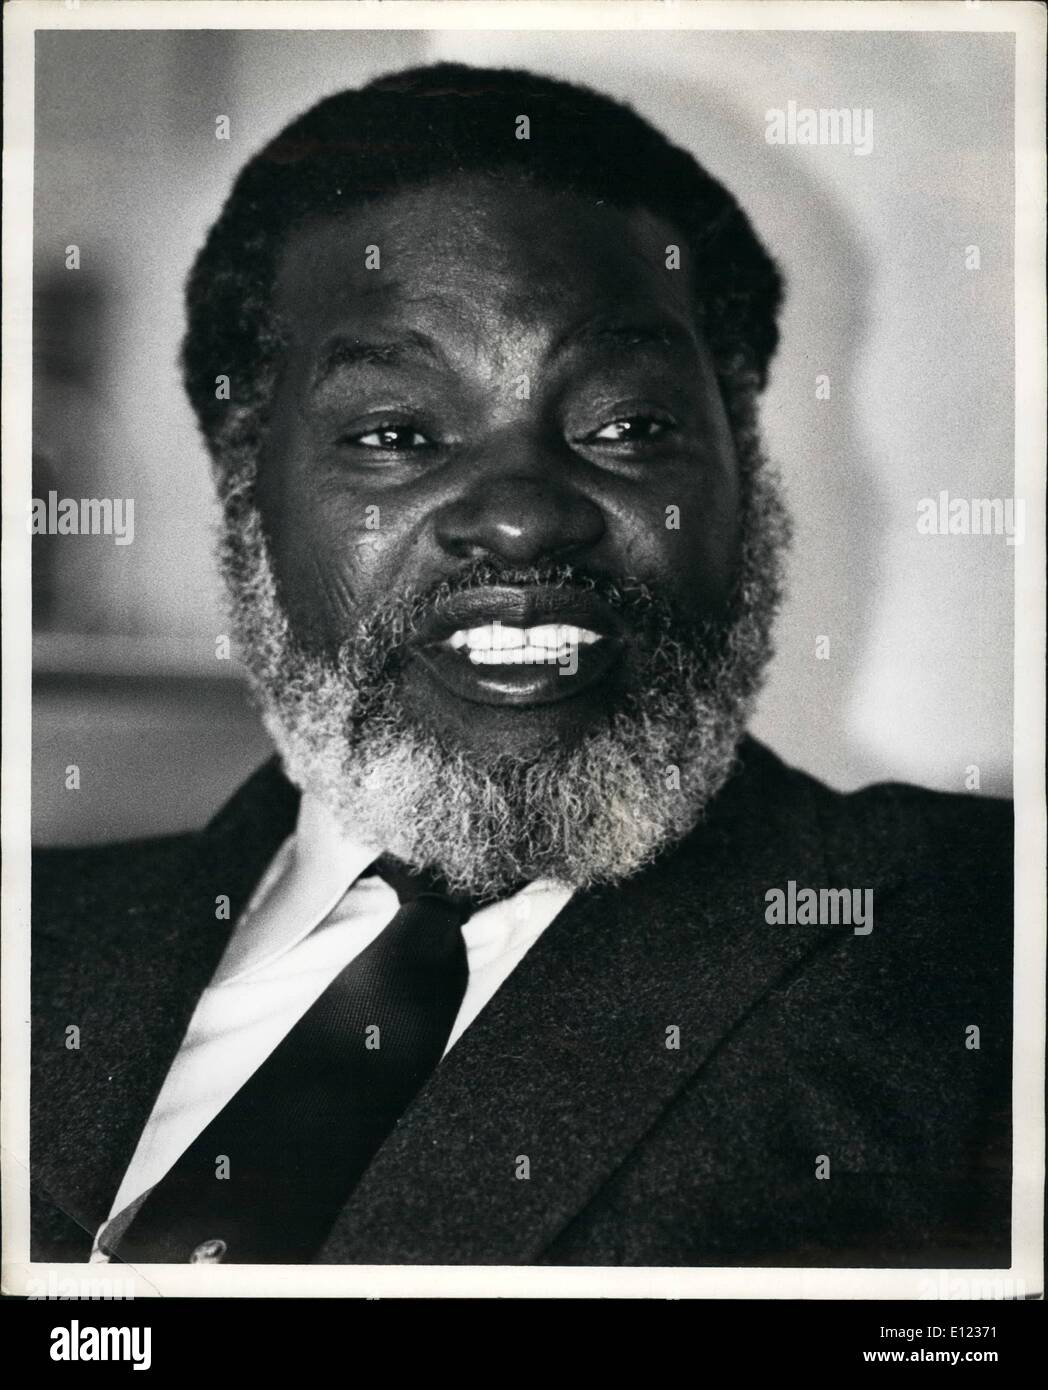 Feb. 02, 1984 - Guerrila Leader Sam Nujoma, President of the South West Africa people's organization, said his men would continue to fight inside Namibia (South West Africa) while observing a recently concluded disengagement accord between Angola and South Africa. Mr. Nujoma, on the tail end of a trip that has taken him to six countries made his remarks during an interview at the United Nations hotel in New York City. ''The fight in Namibia will continue, because there is no cease-fire in Namibia''. Mr. Nujoma said though he added that Swapo was ready to sign a cease-fire with South Africa - Stock Image